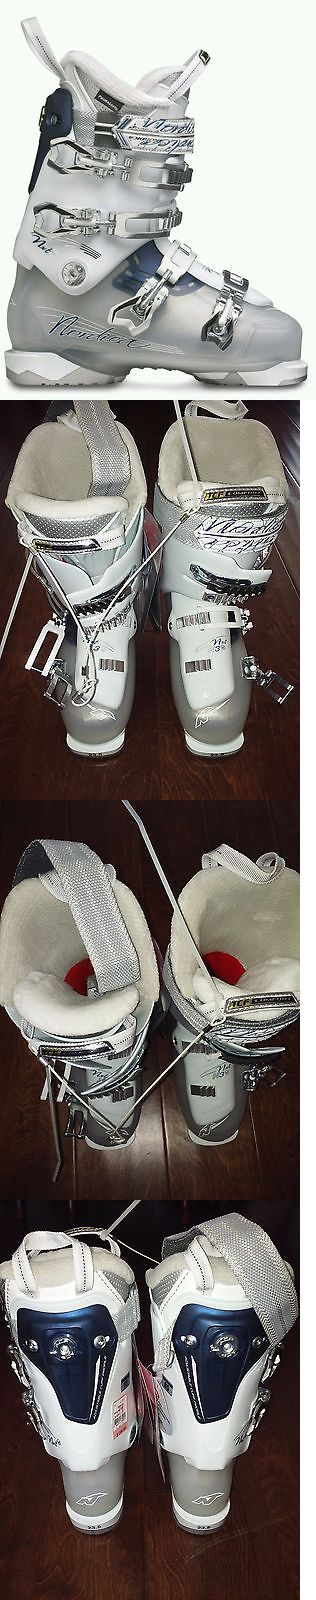 Women 21241: Nordica Nxt N3 W Downhill Ski Boots White - New -- 23.5 BUY IT NOW ONLY: $124.94